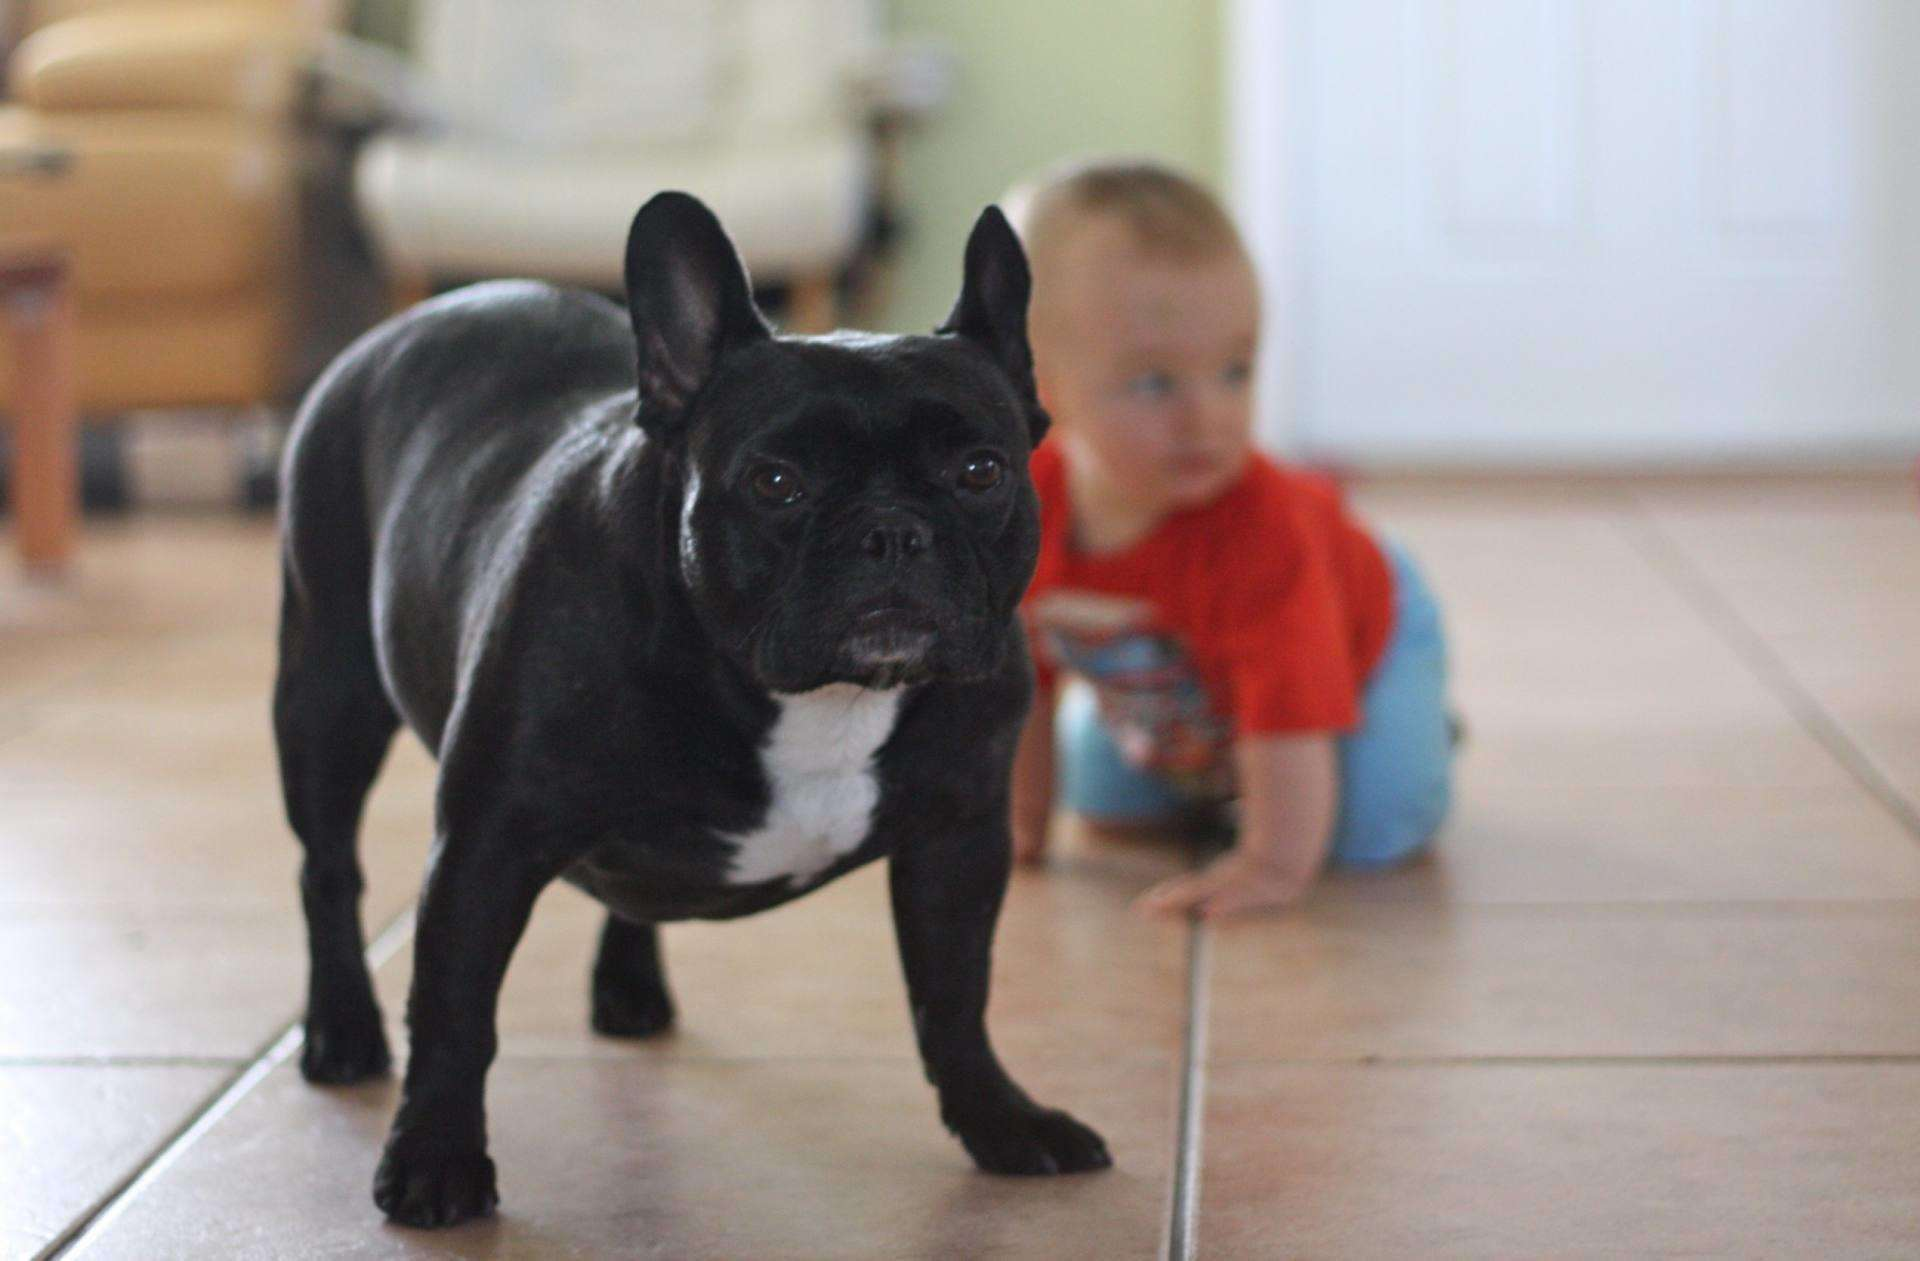 Are dogs and toddlers a safe combination?, French Bulldog and toddler%, uncategorised, new-dad, community%